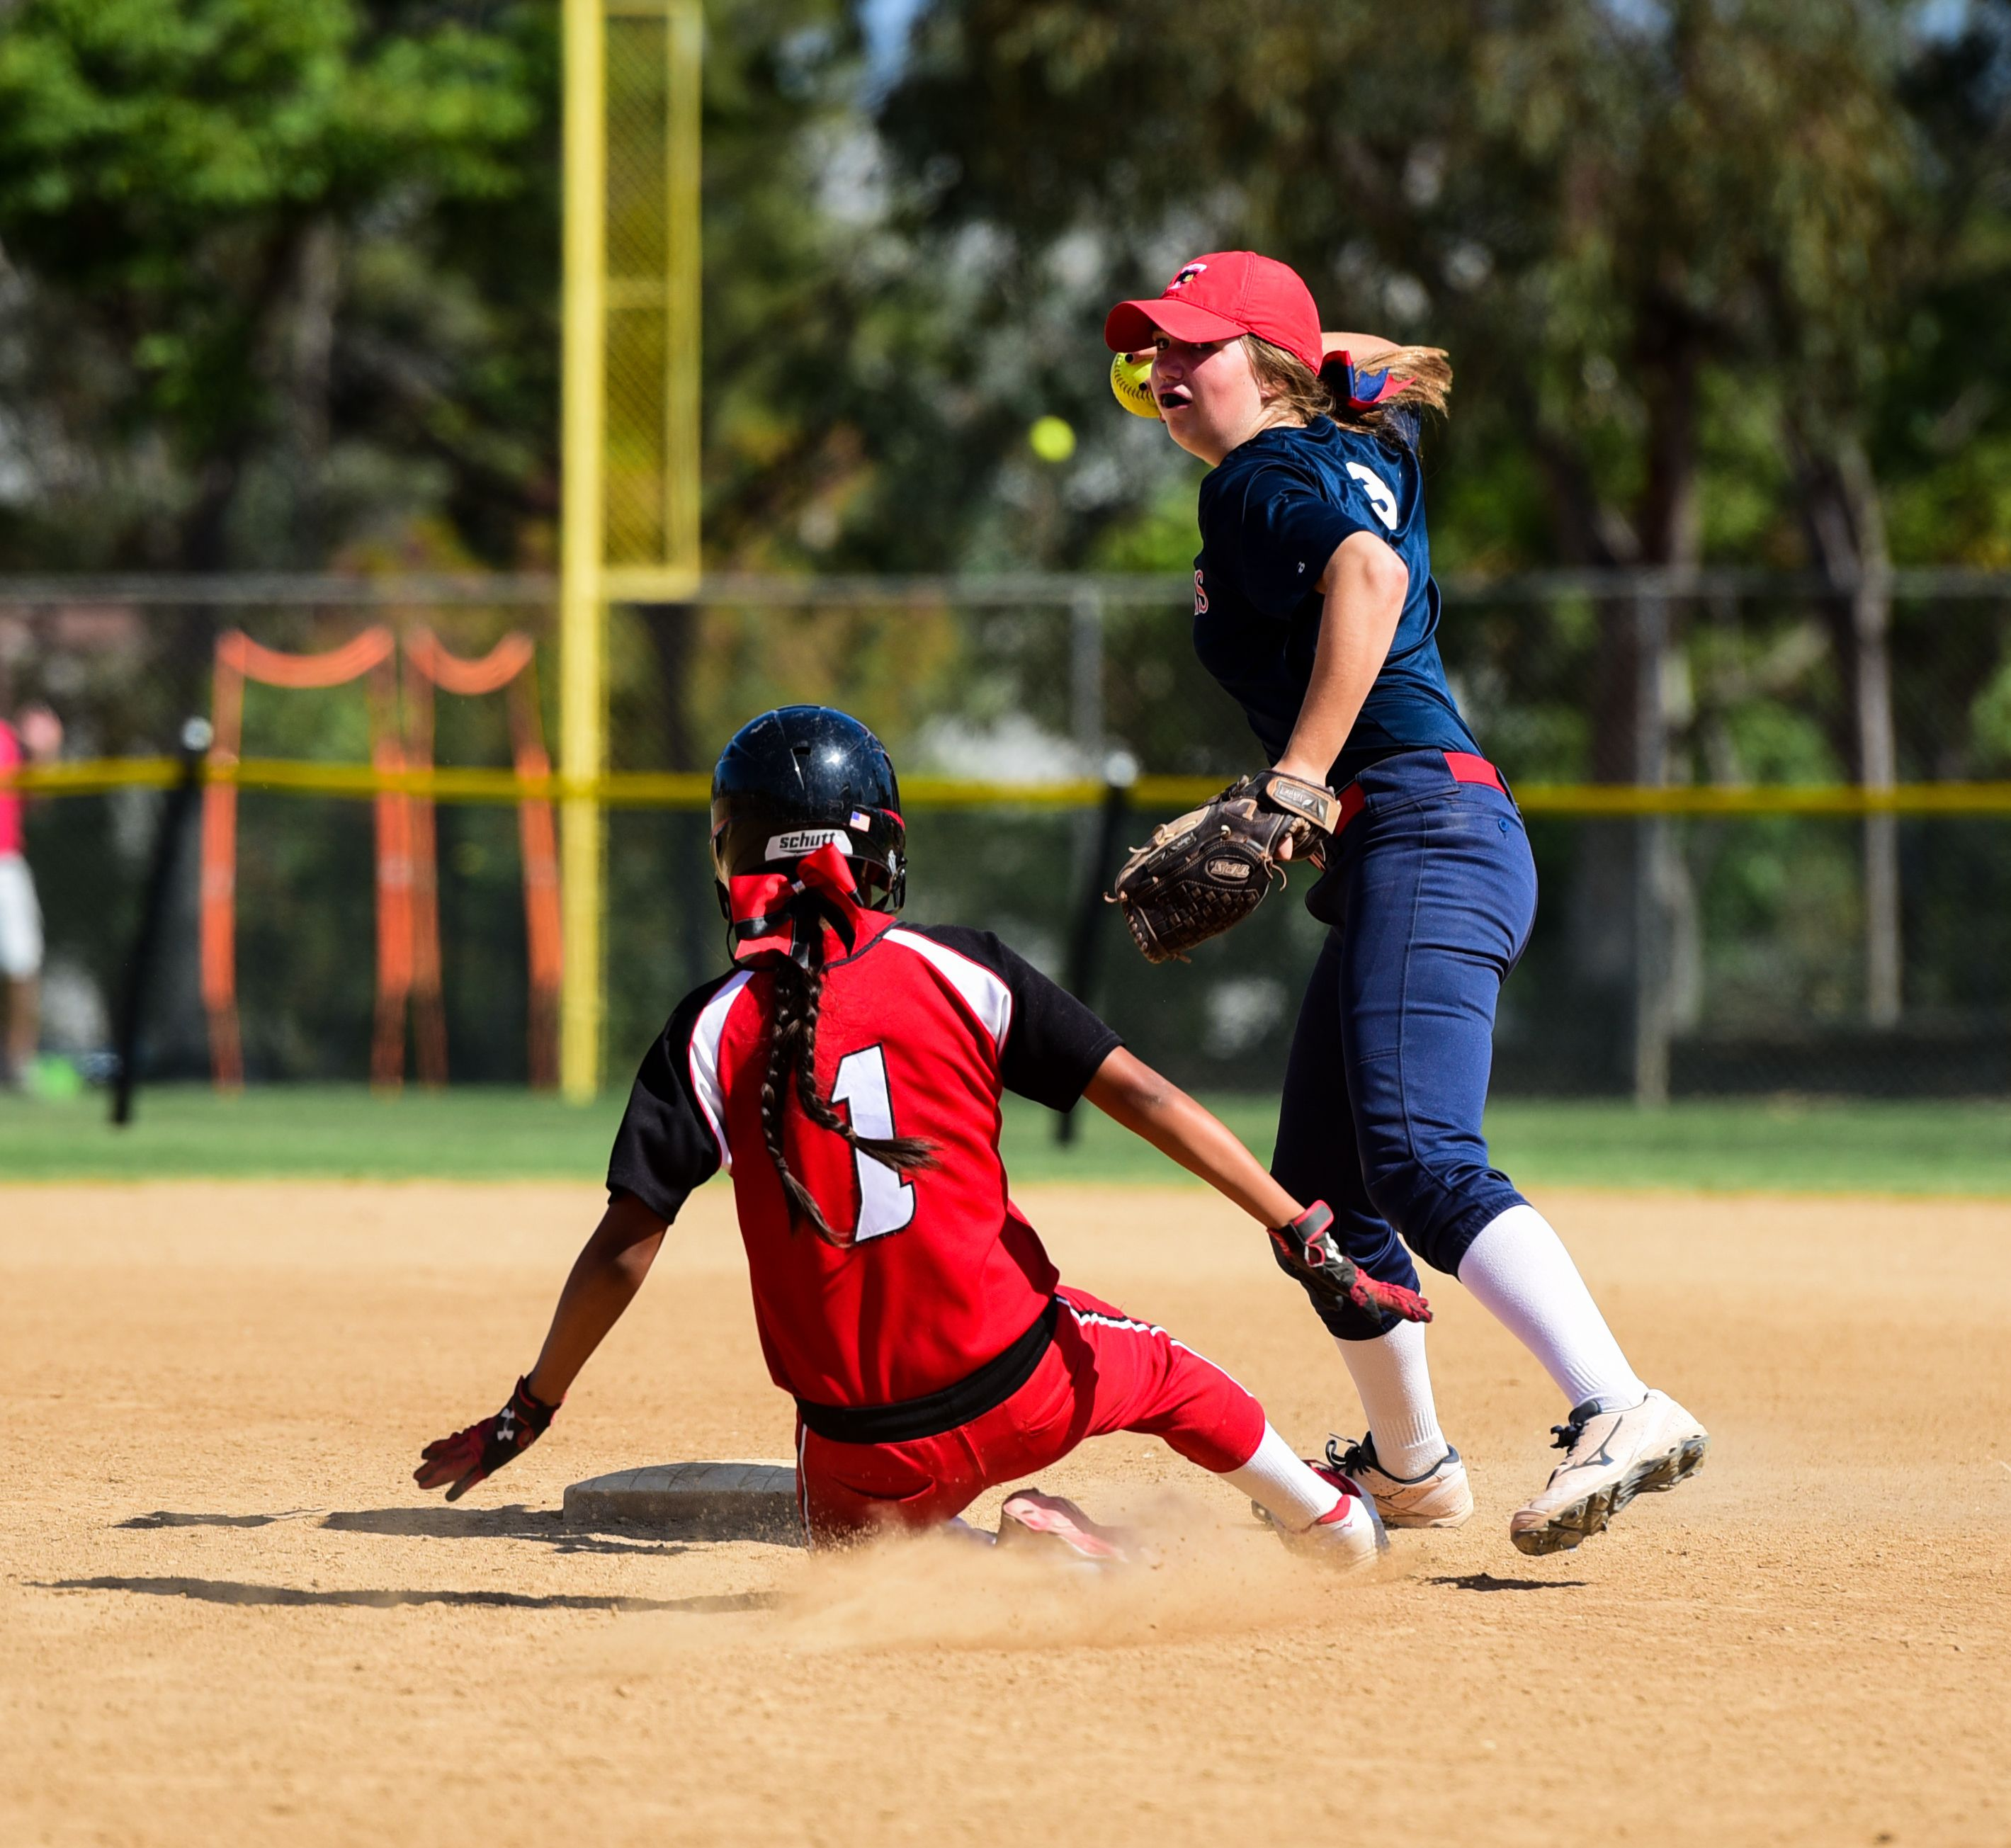 Girls Fast Pitch Sports Photography Sports Photography